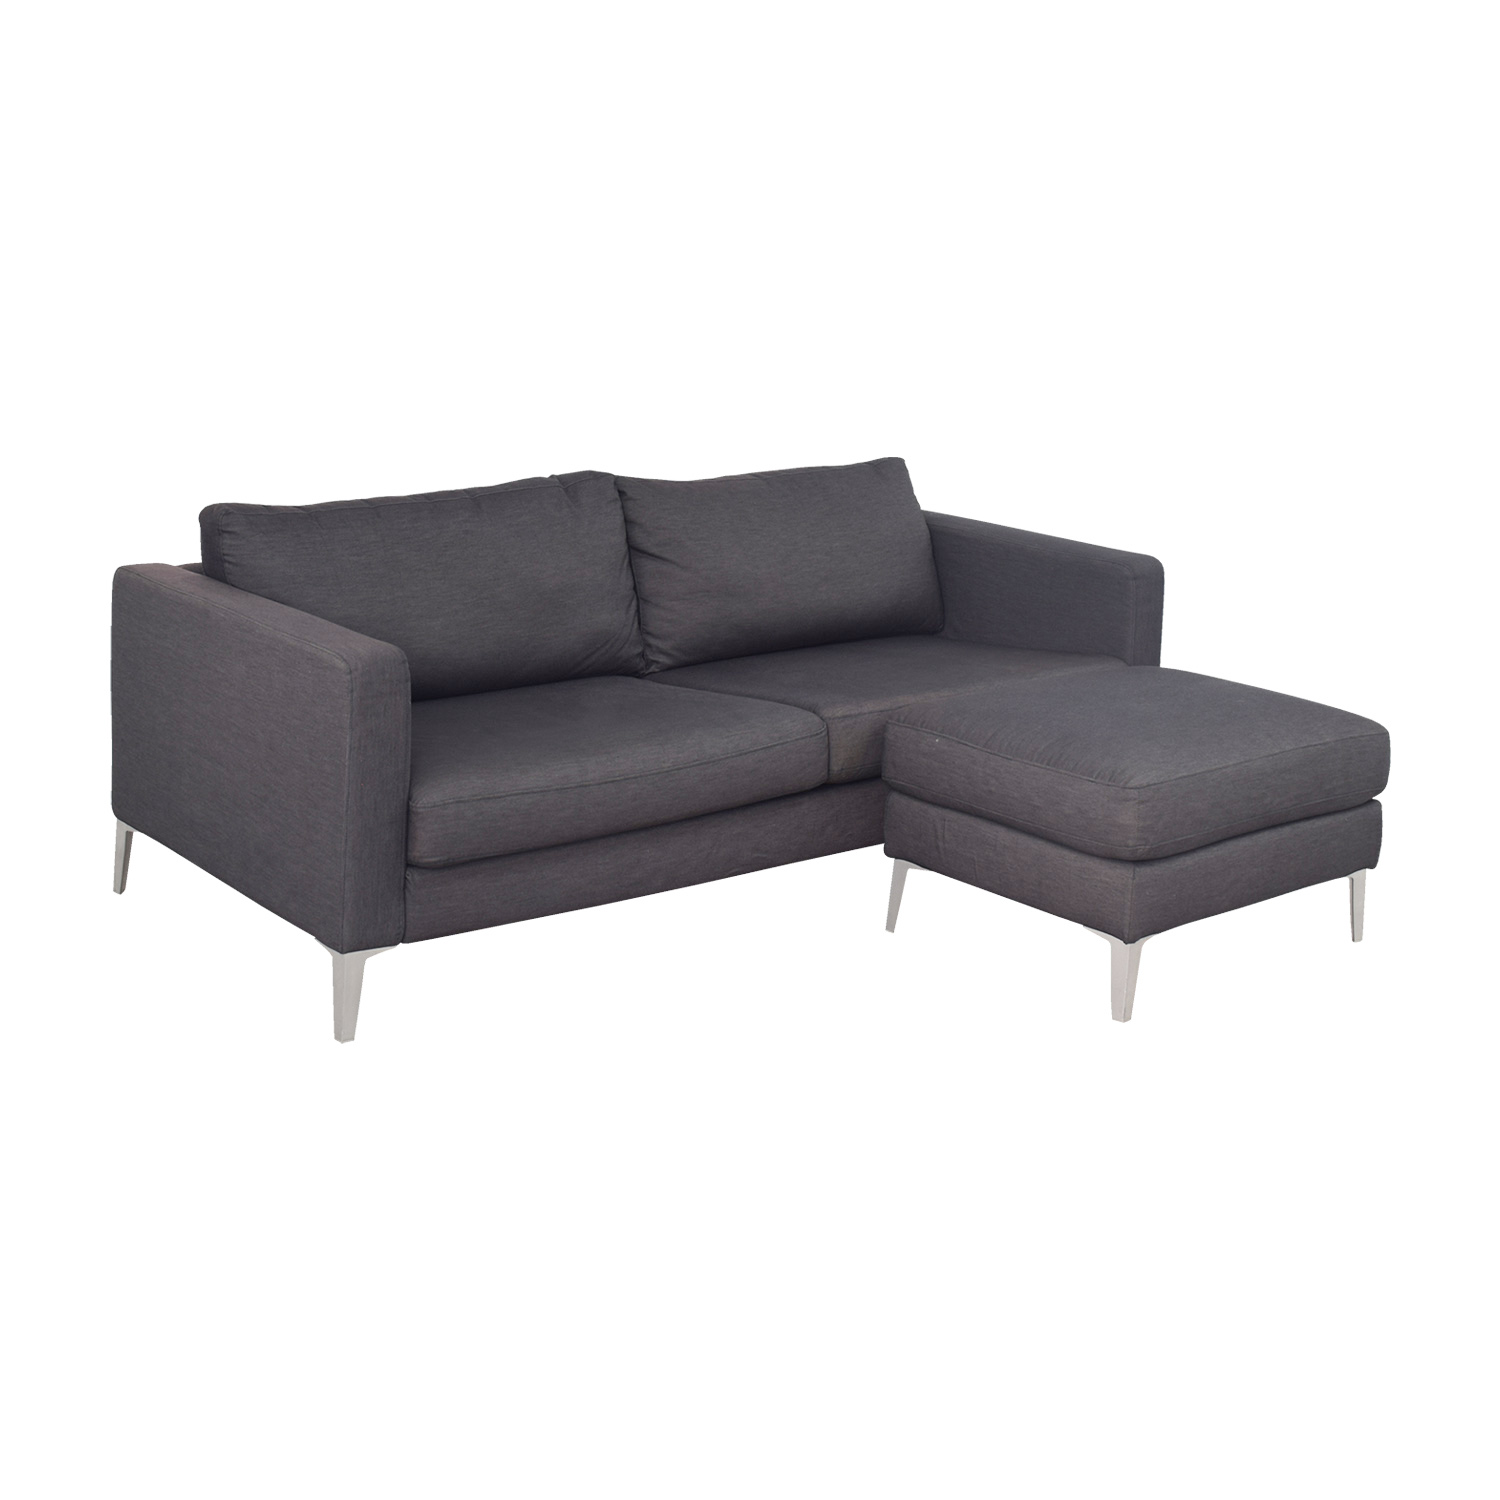 grey sofa table ikea distressed brown leather corner 44 off karlstad couch and ottoman sofas